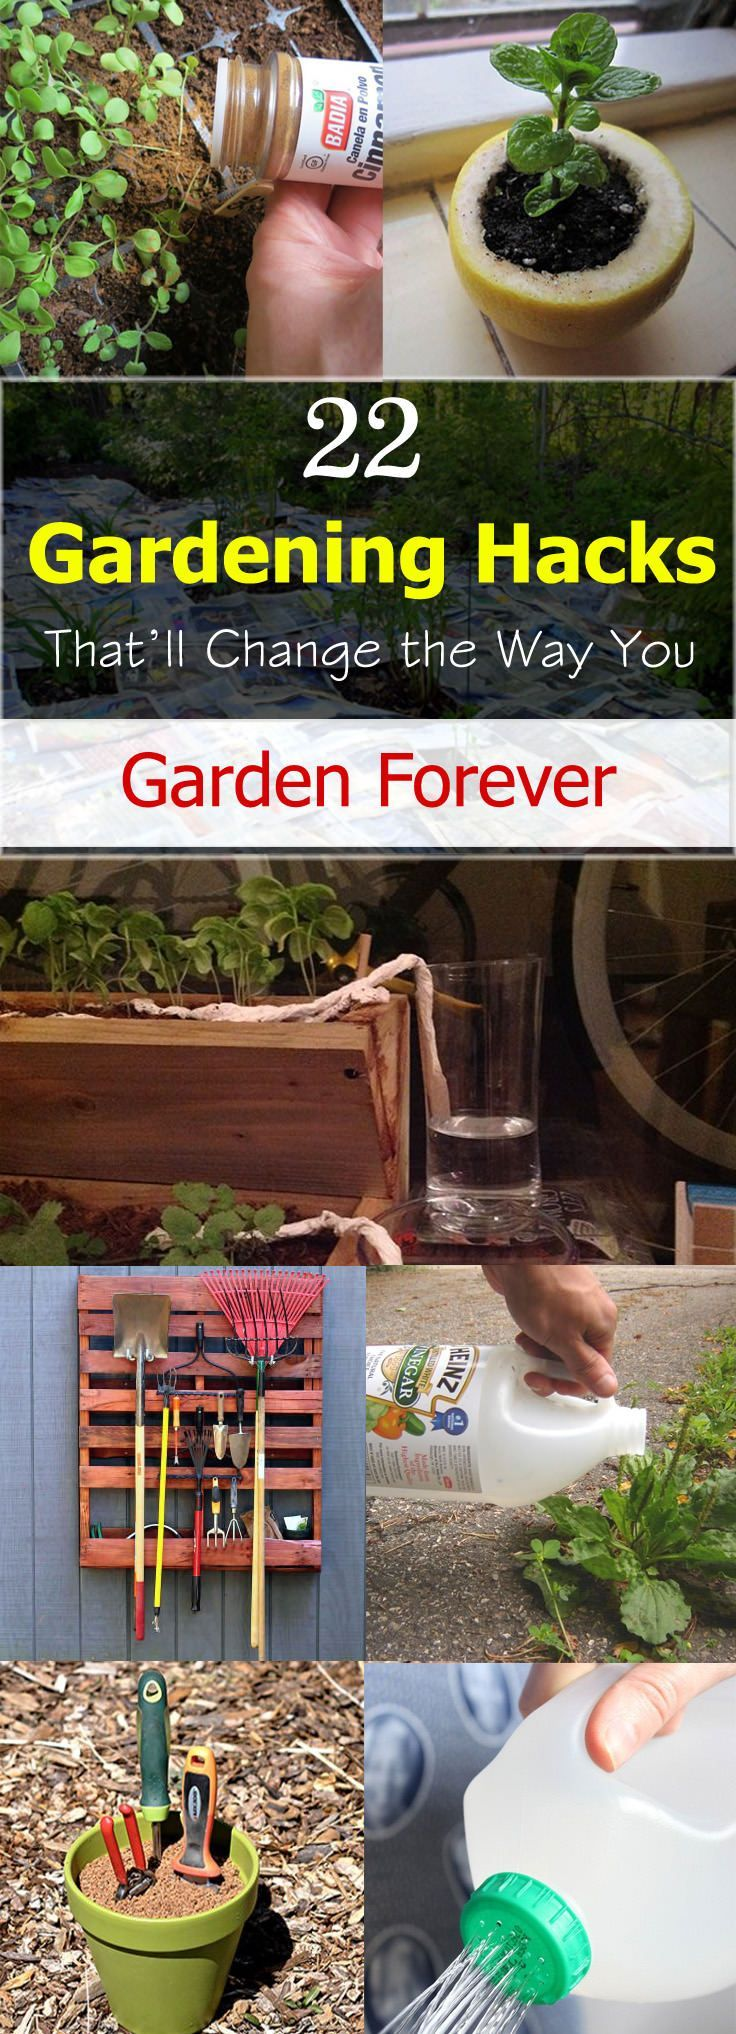 Gardening Hacks That'll Change the Way You Garden Forever These 22 clever and easy gardening hacks are so useful that using them can change the way you garden forever.These 22 clever and easy gardening hacks are so useful that using them can change the way you garden forever.